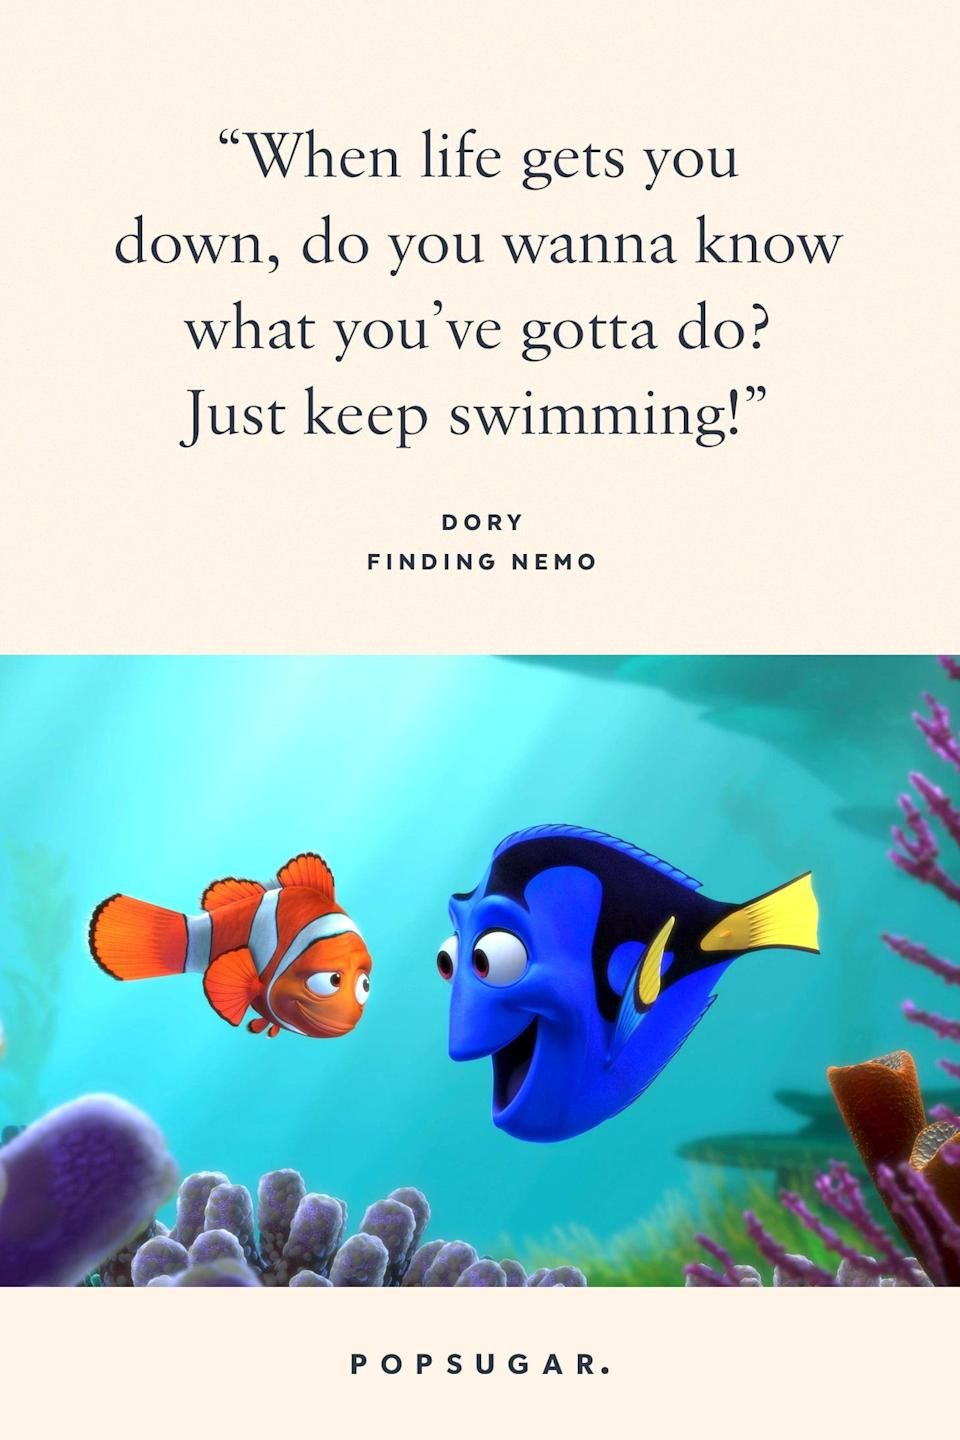 "<p>""When life gets you down, do you wanna know what you've gotta do? Just keep swimming!"" - Dory, <b>Finding Nemo</b></p>"